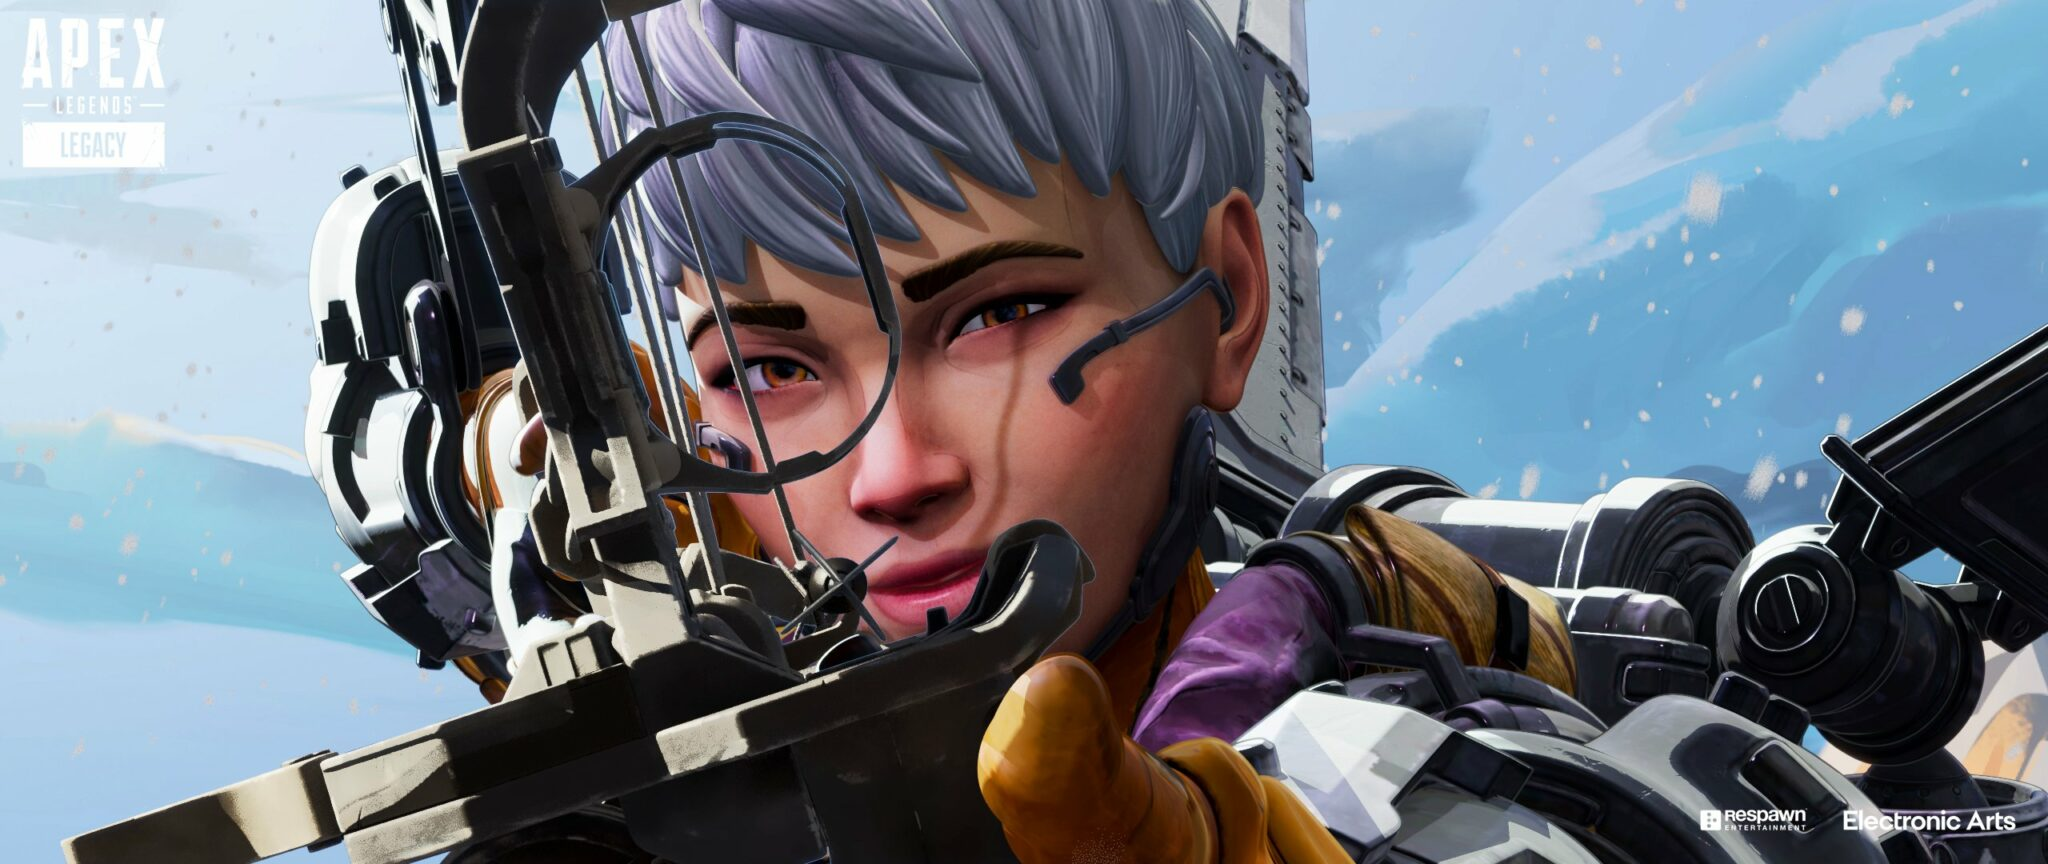 When Does Apex Legends Season 9 Legacy Start? Valkyrie and Arenas Release Time